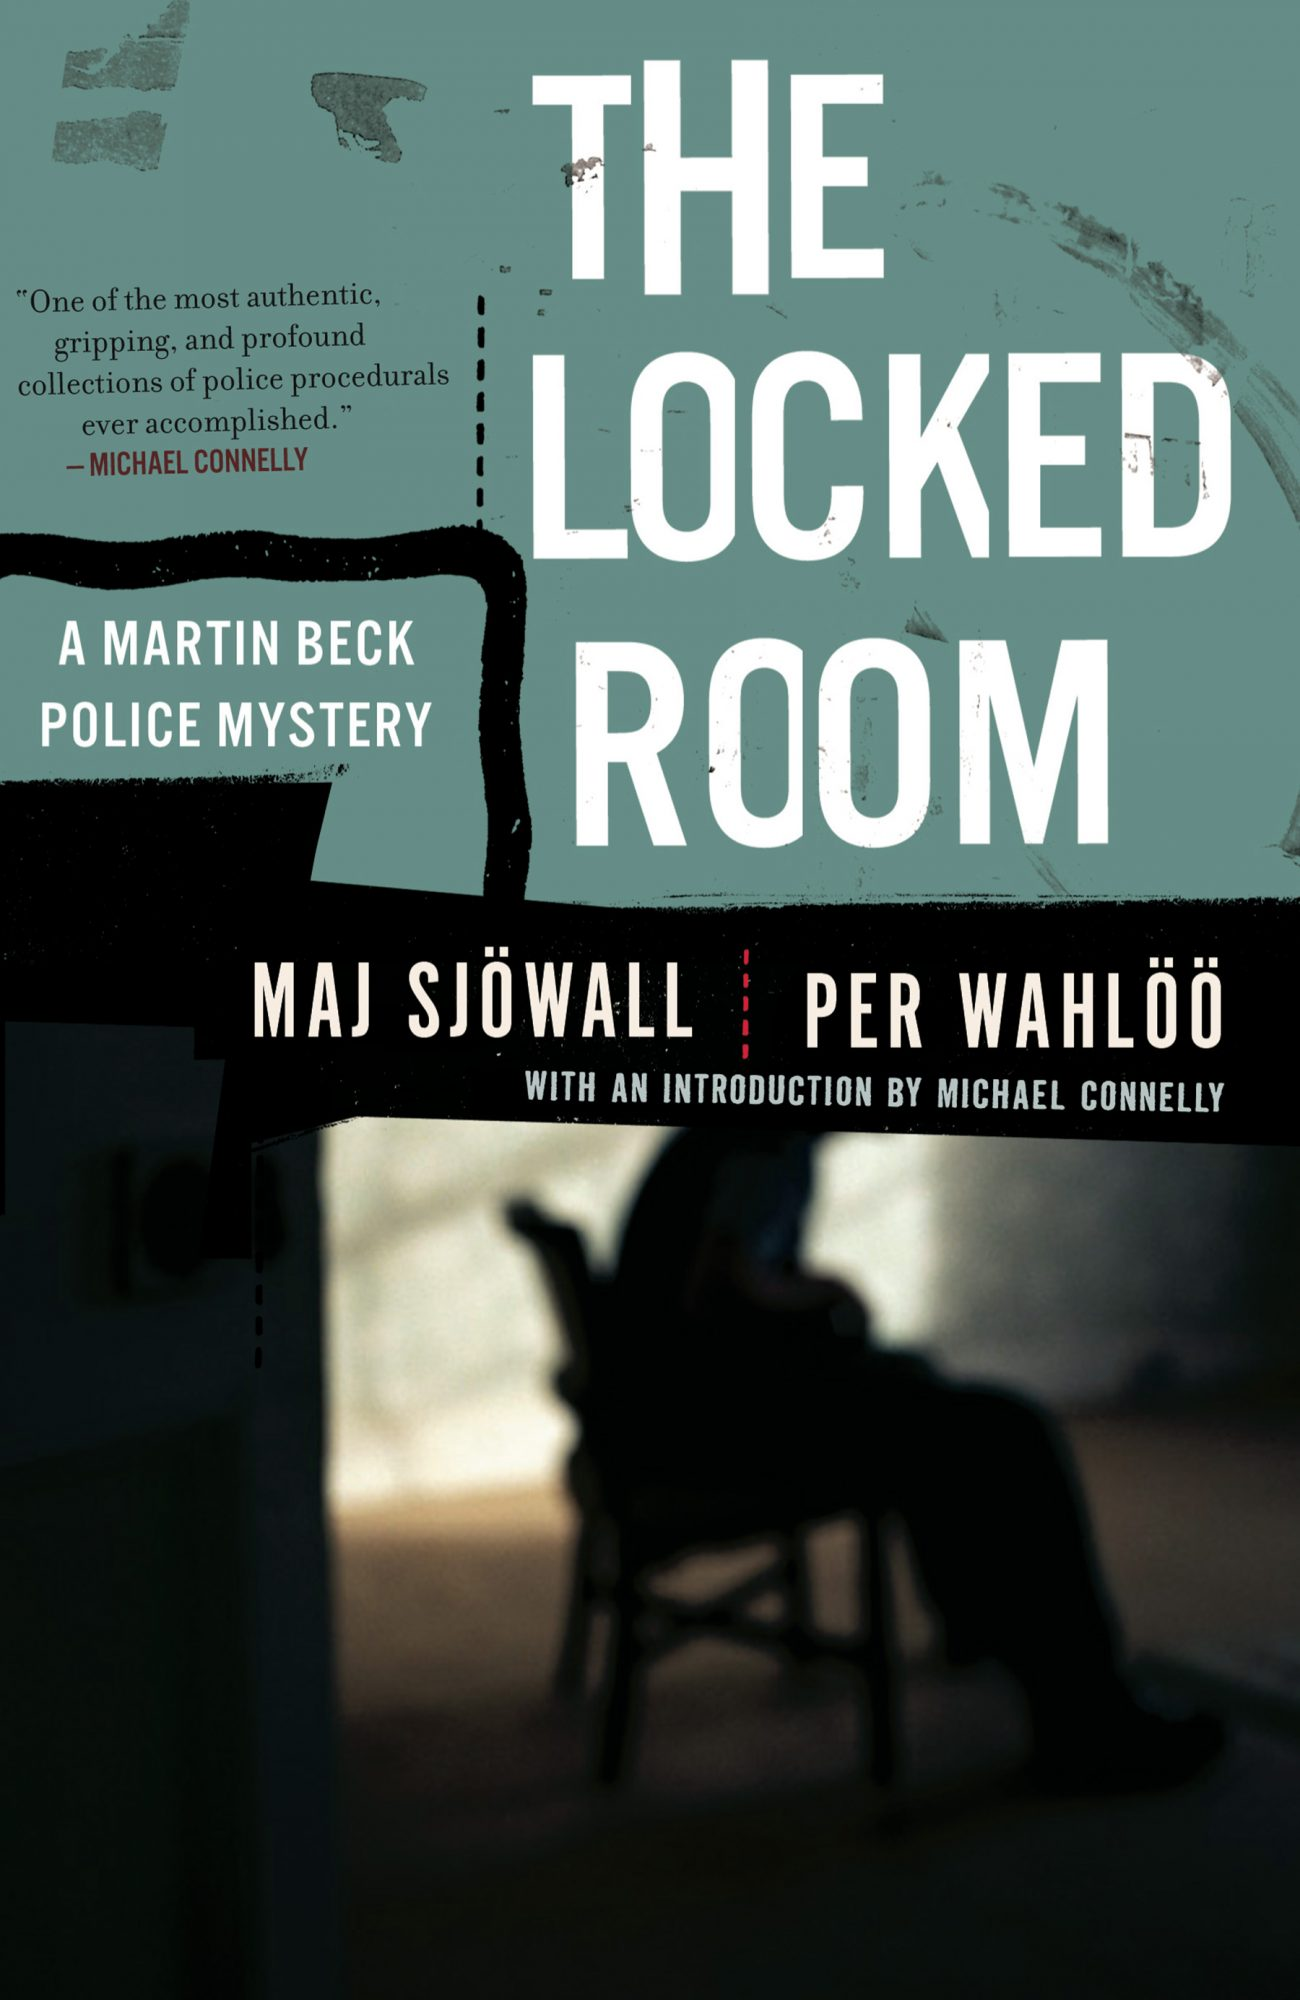 Maj Sjöwall, The Locked Room